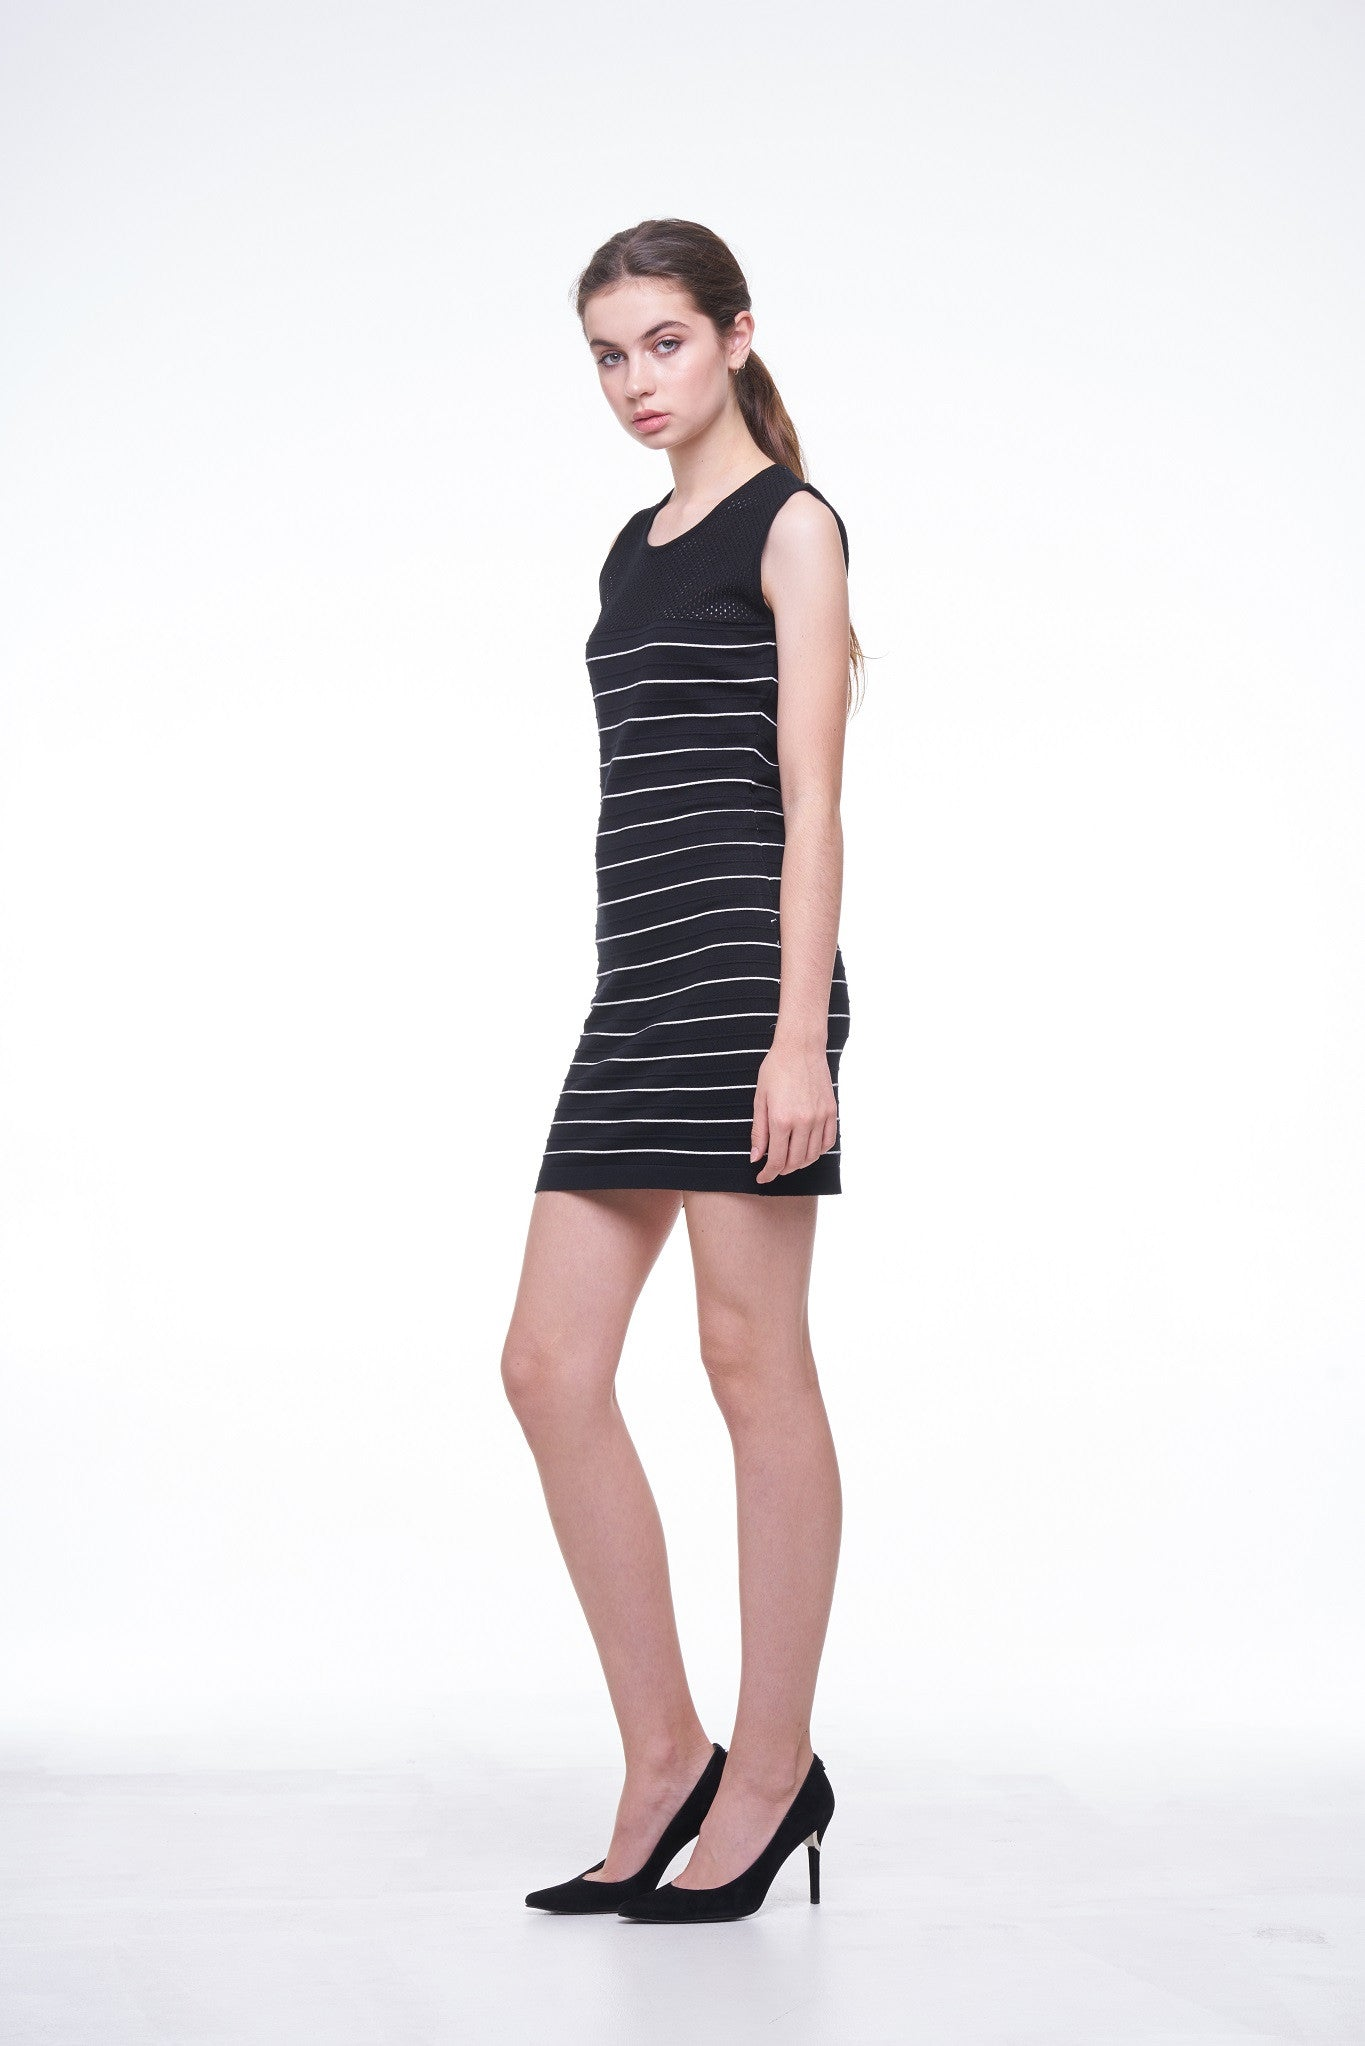 Knit Striped Sleeveless Dress - Not in Stock